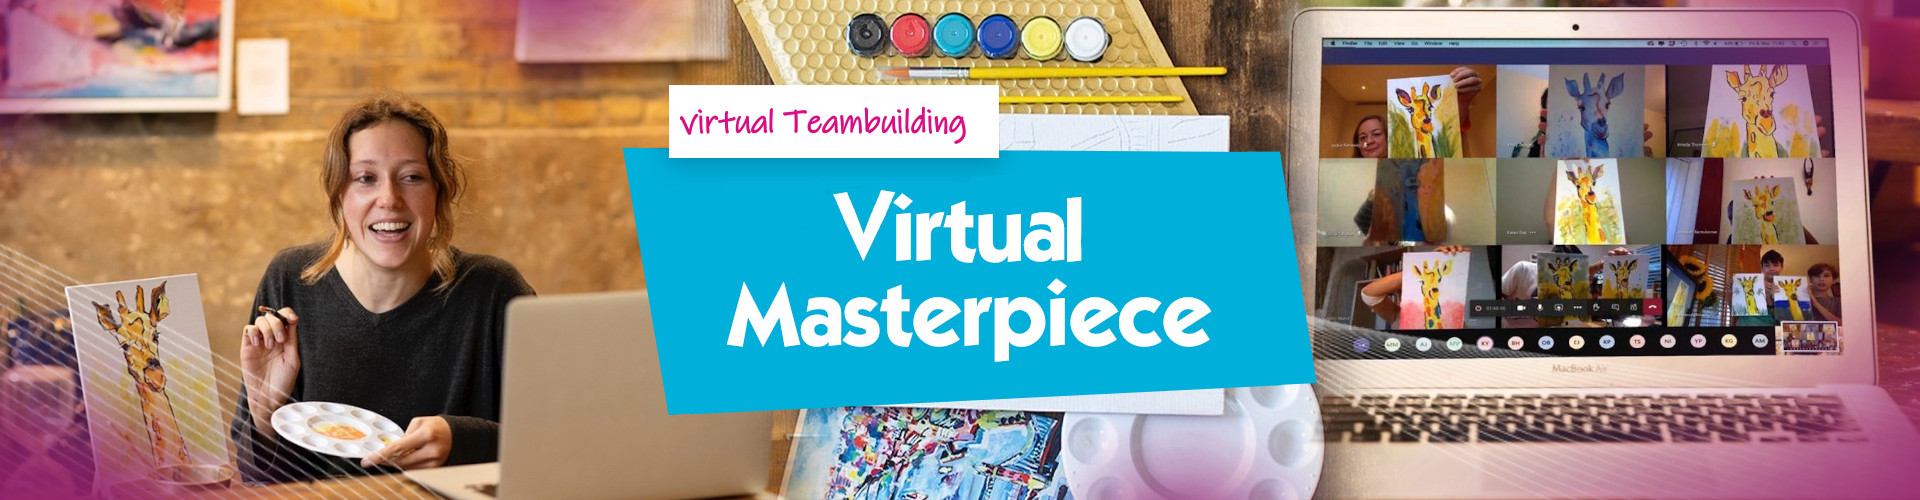 Virtual-Masterpiece-Banner